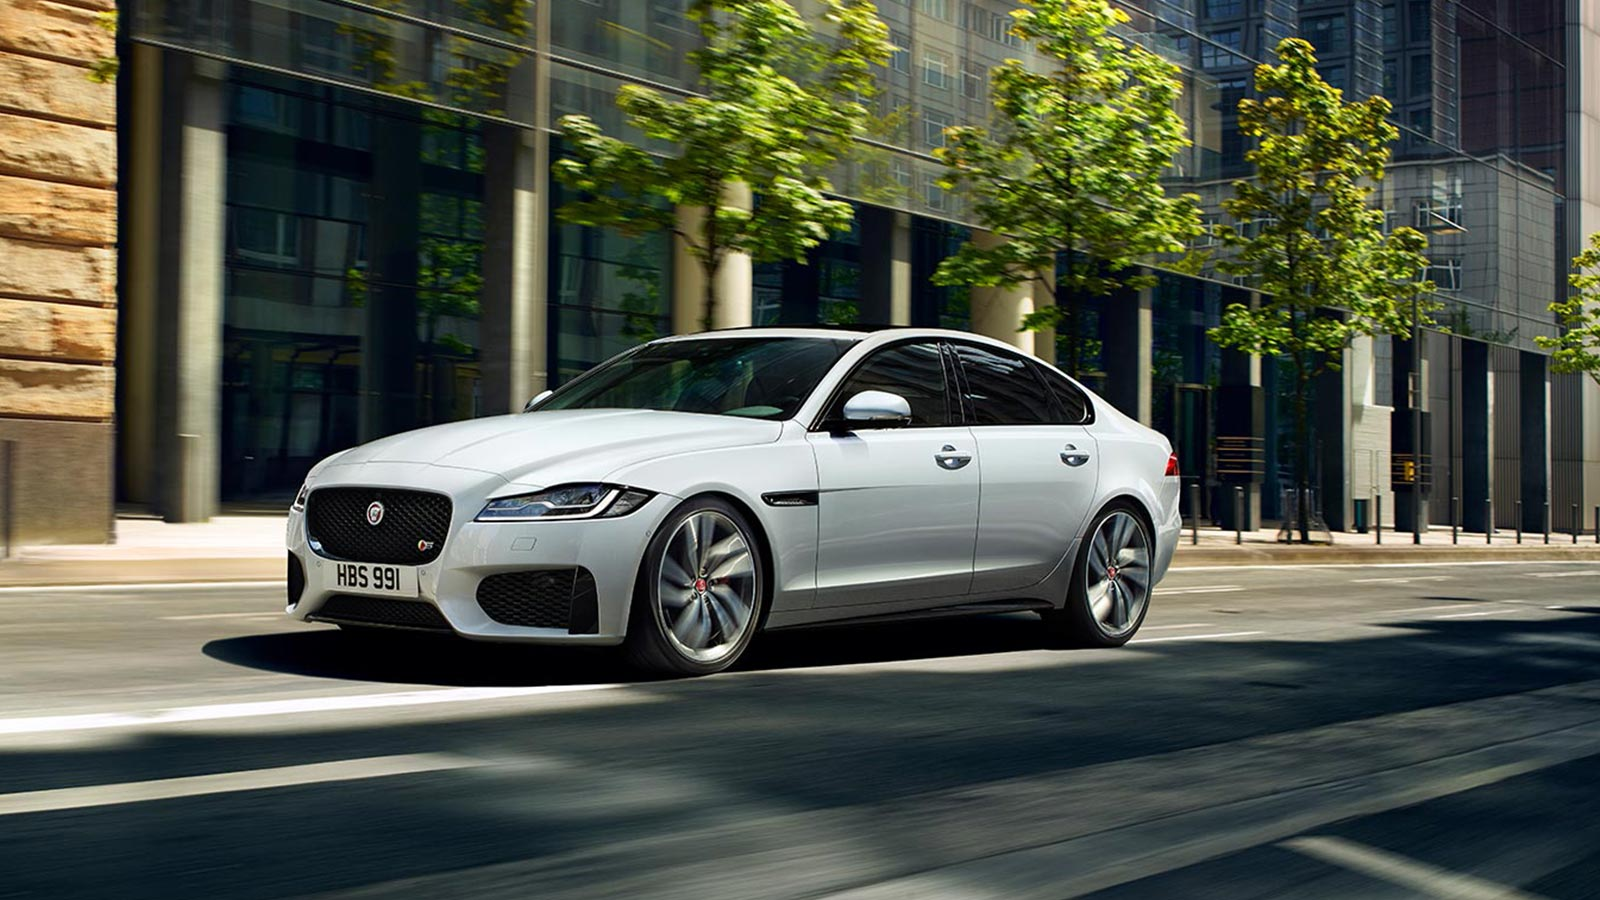 Jaguar XF Driving Along Road.